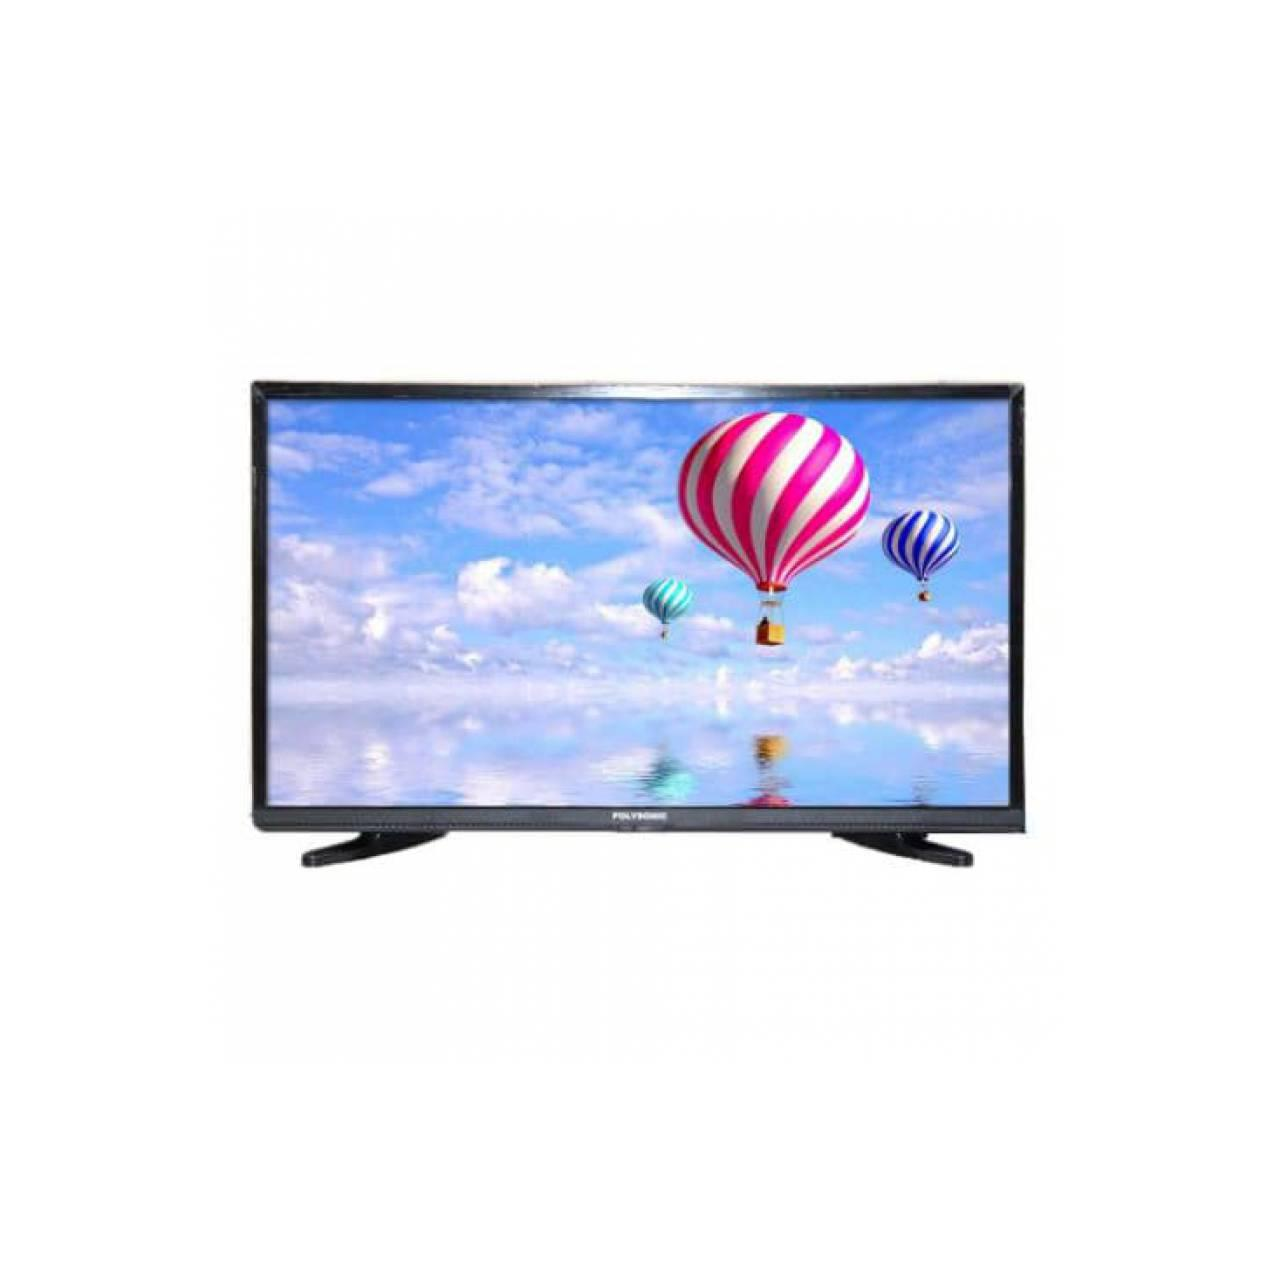 LED TV 19 Inch Polysonic PS-1892 Wide Free Receiver PromoIDR2184000. Rp 2.832.000